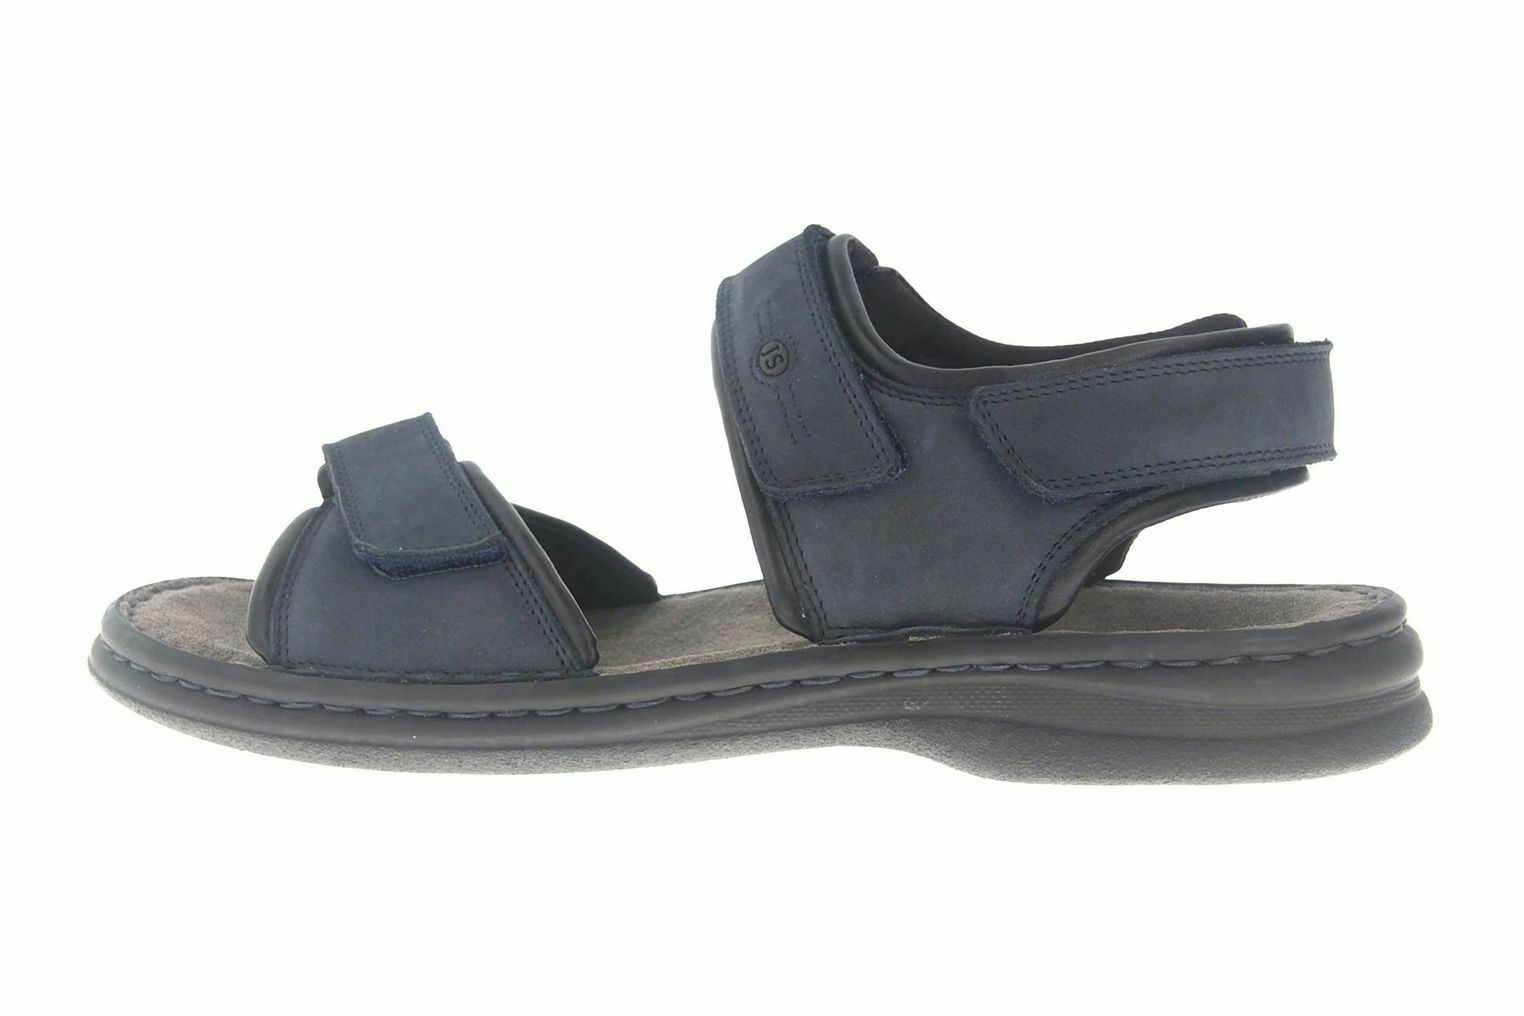 Josef Seibel Rafe Sandals in Plus Sizes blueee 10104 11 582 Large Mens shoes